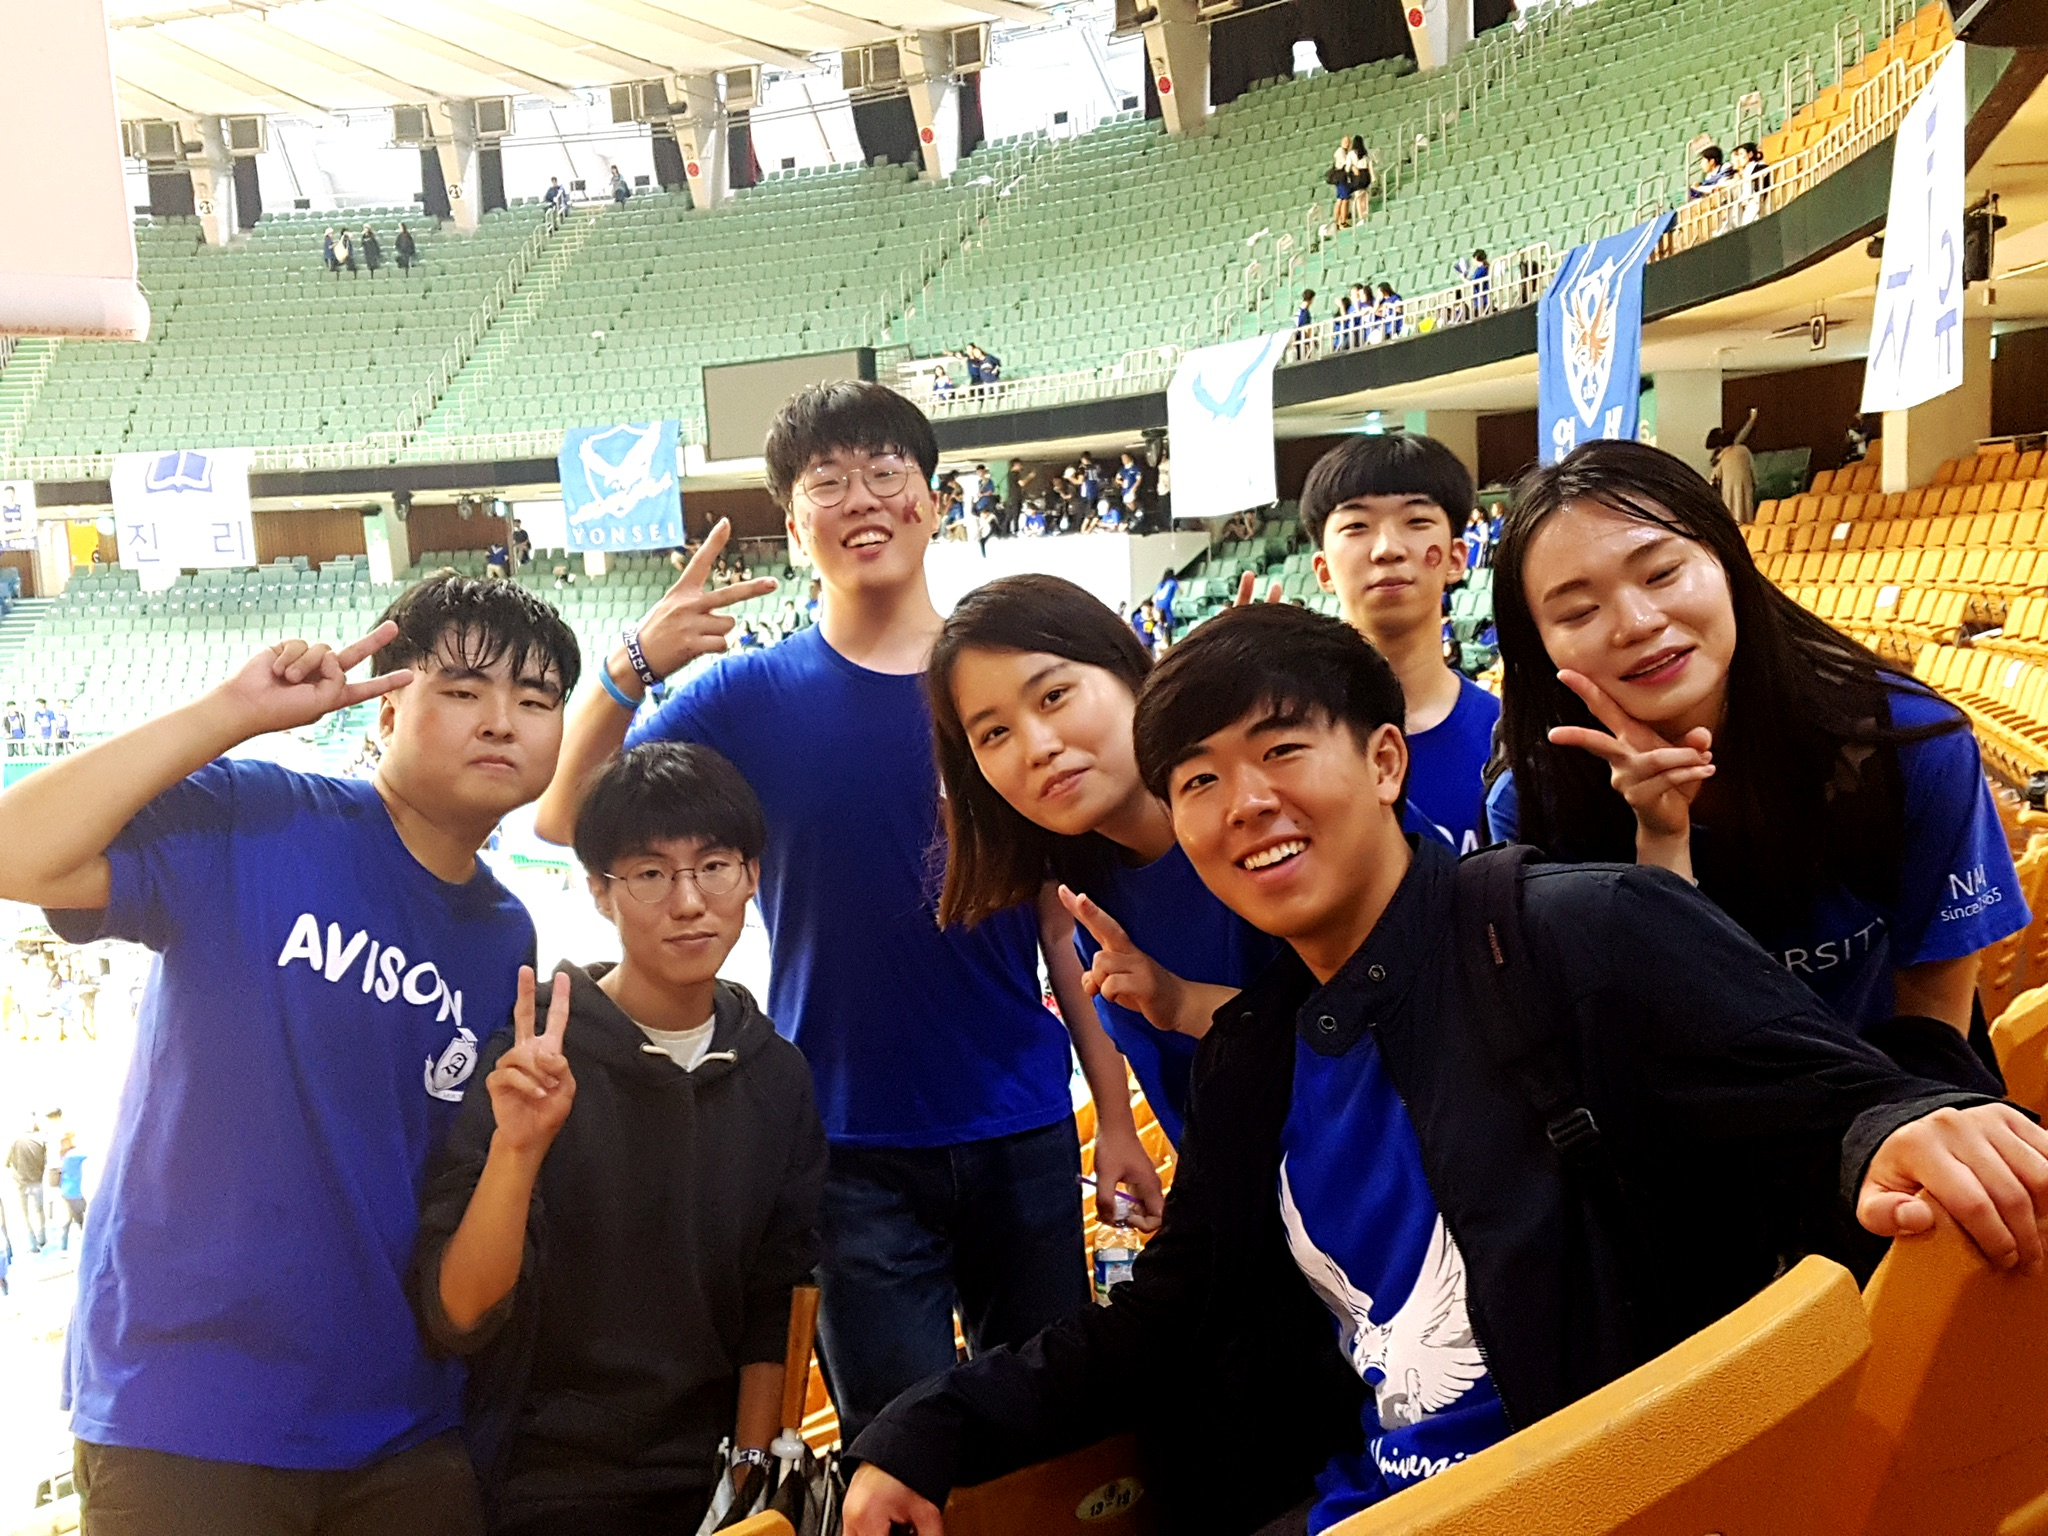 Brandon Yoon attends a sports festival with local Korean students.